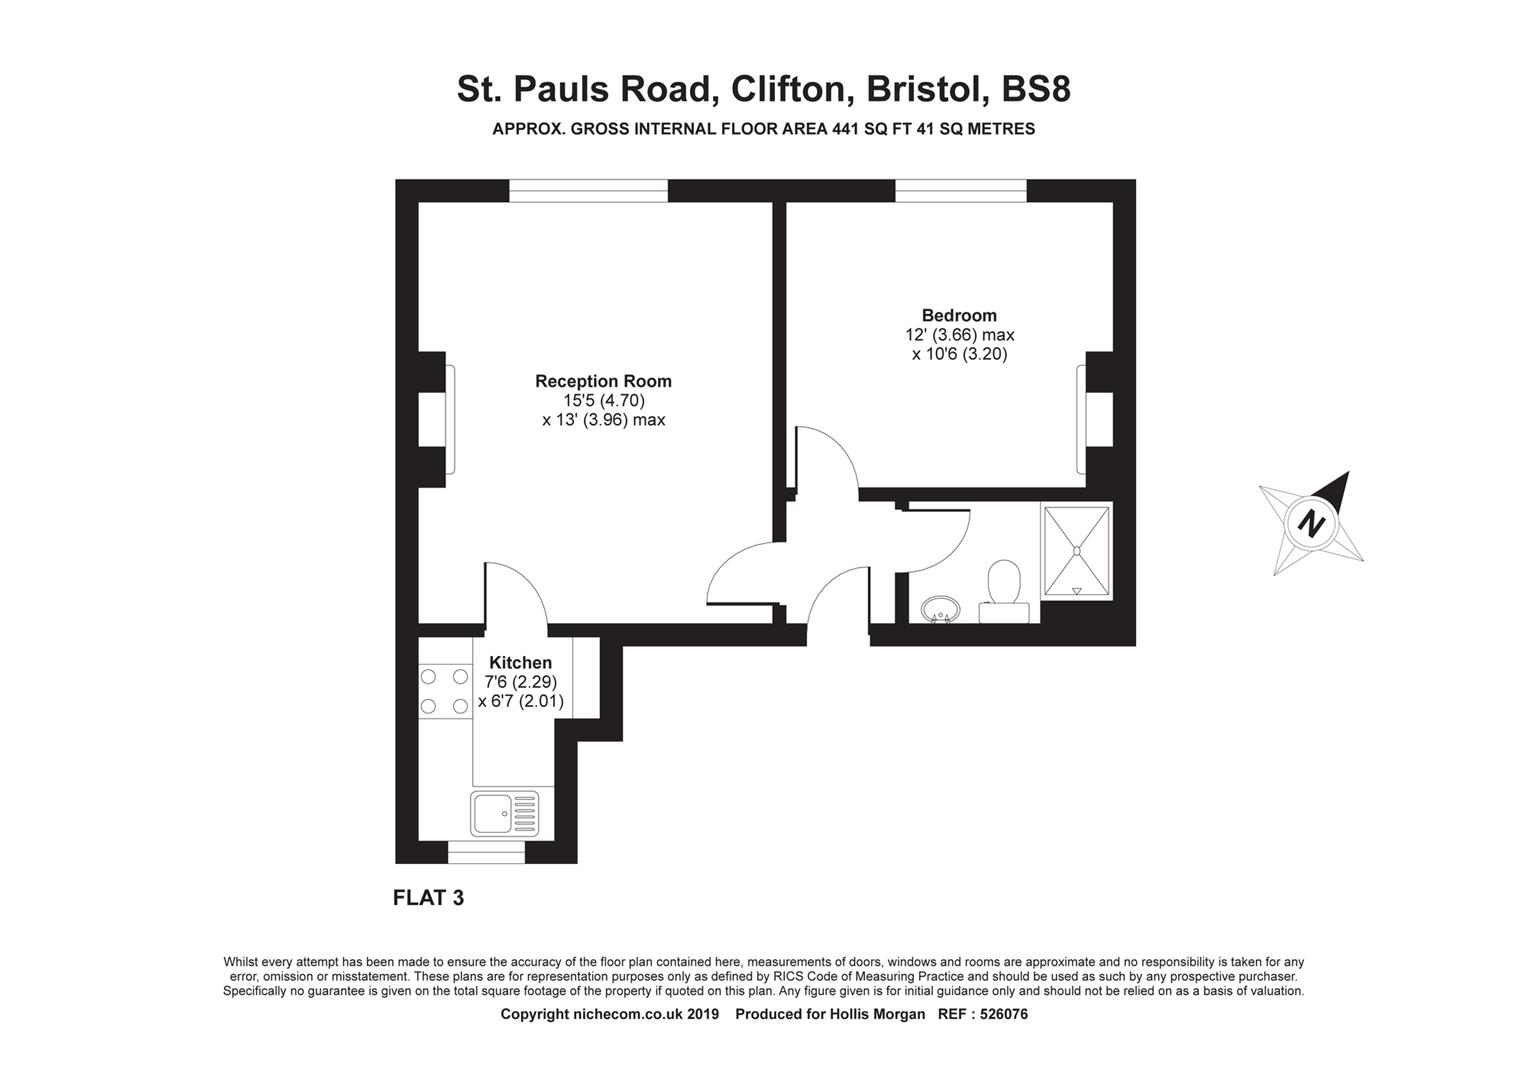 Floorplans For St. Pauls Road, Clifton